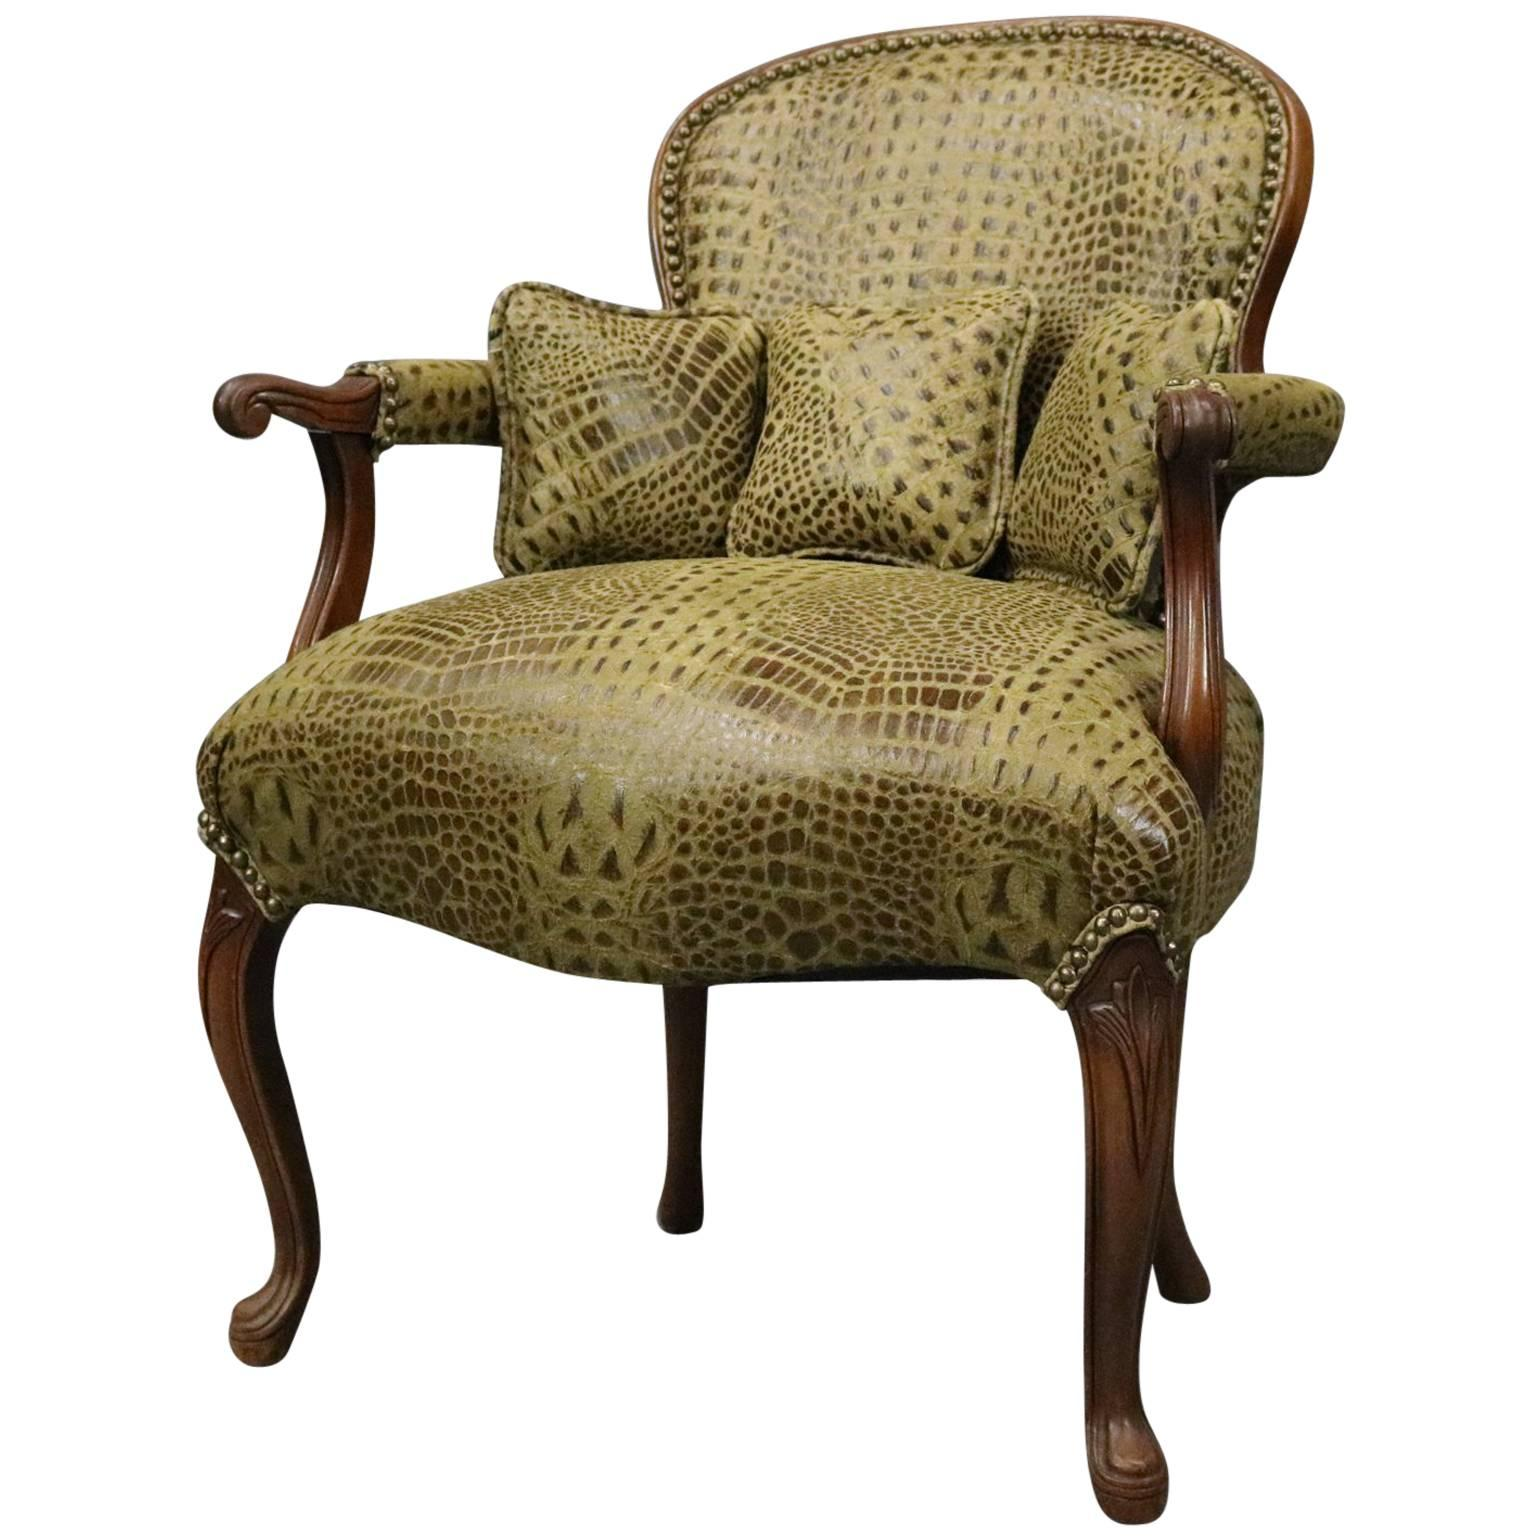 Vintage French Alligator Print Leather Louis XV Style Armchair And Ottoman  For Sale